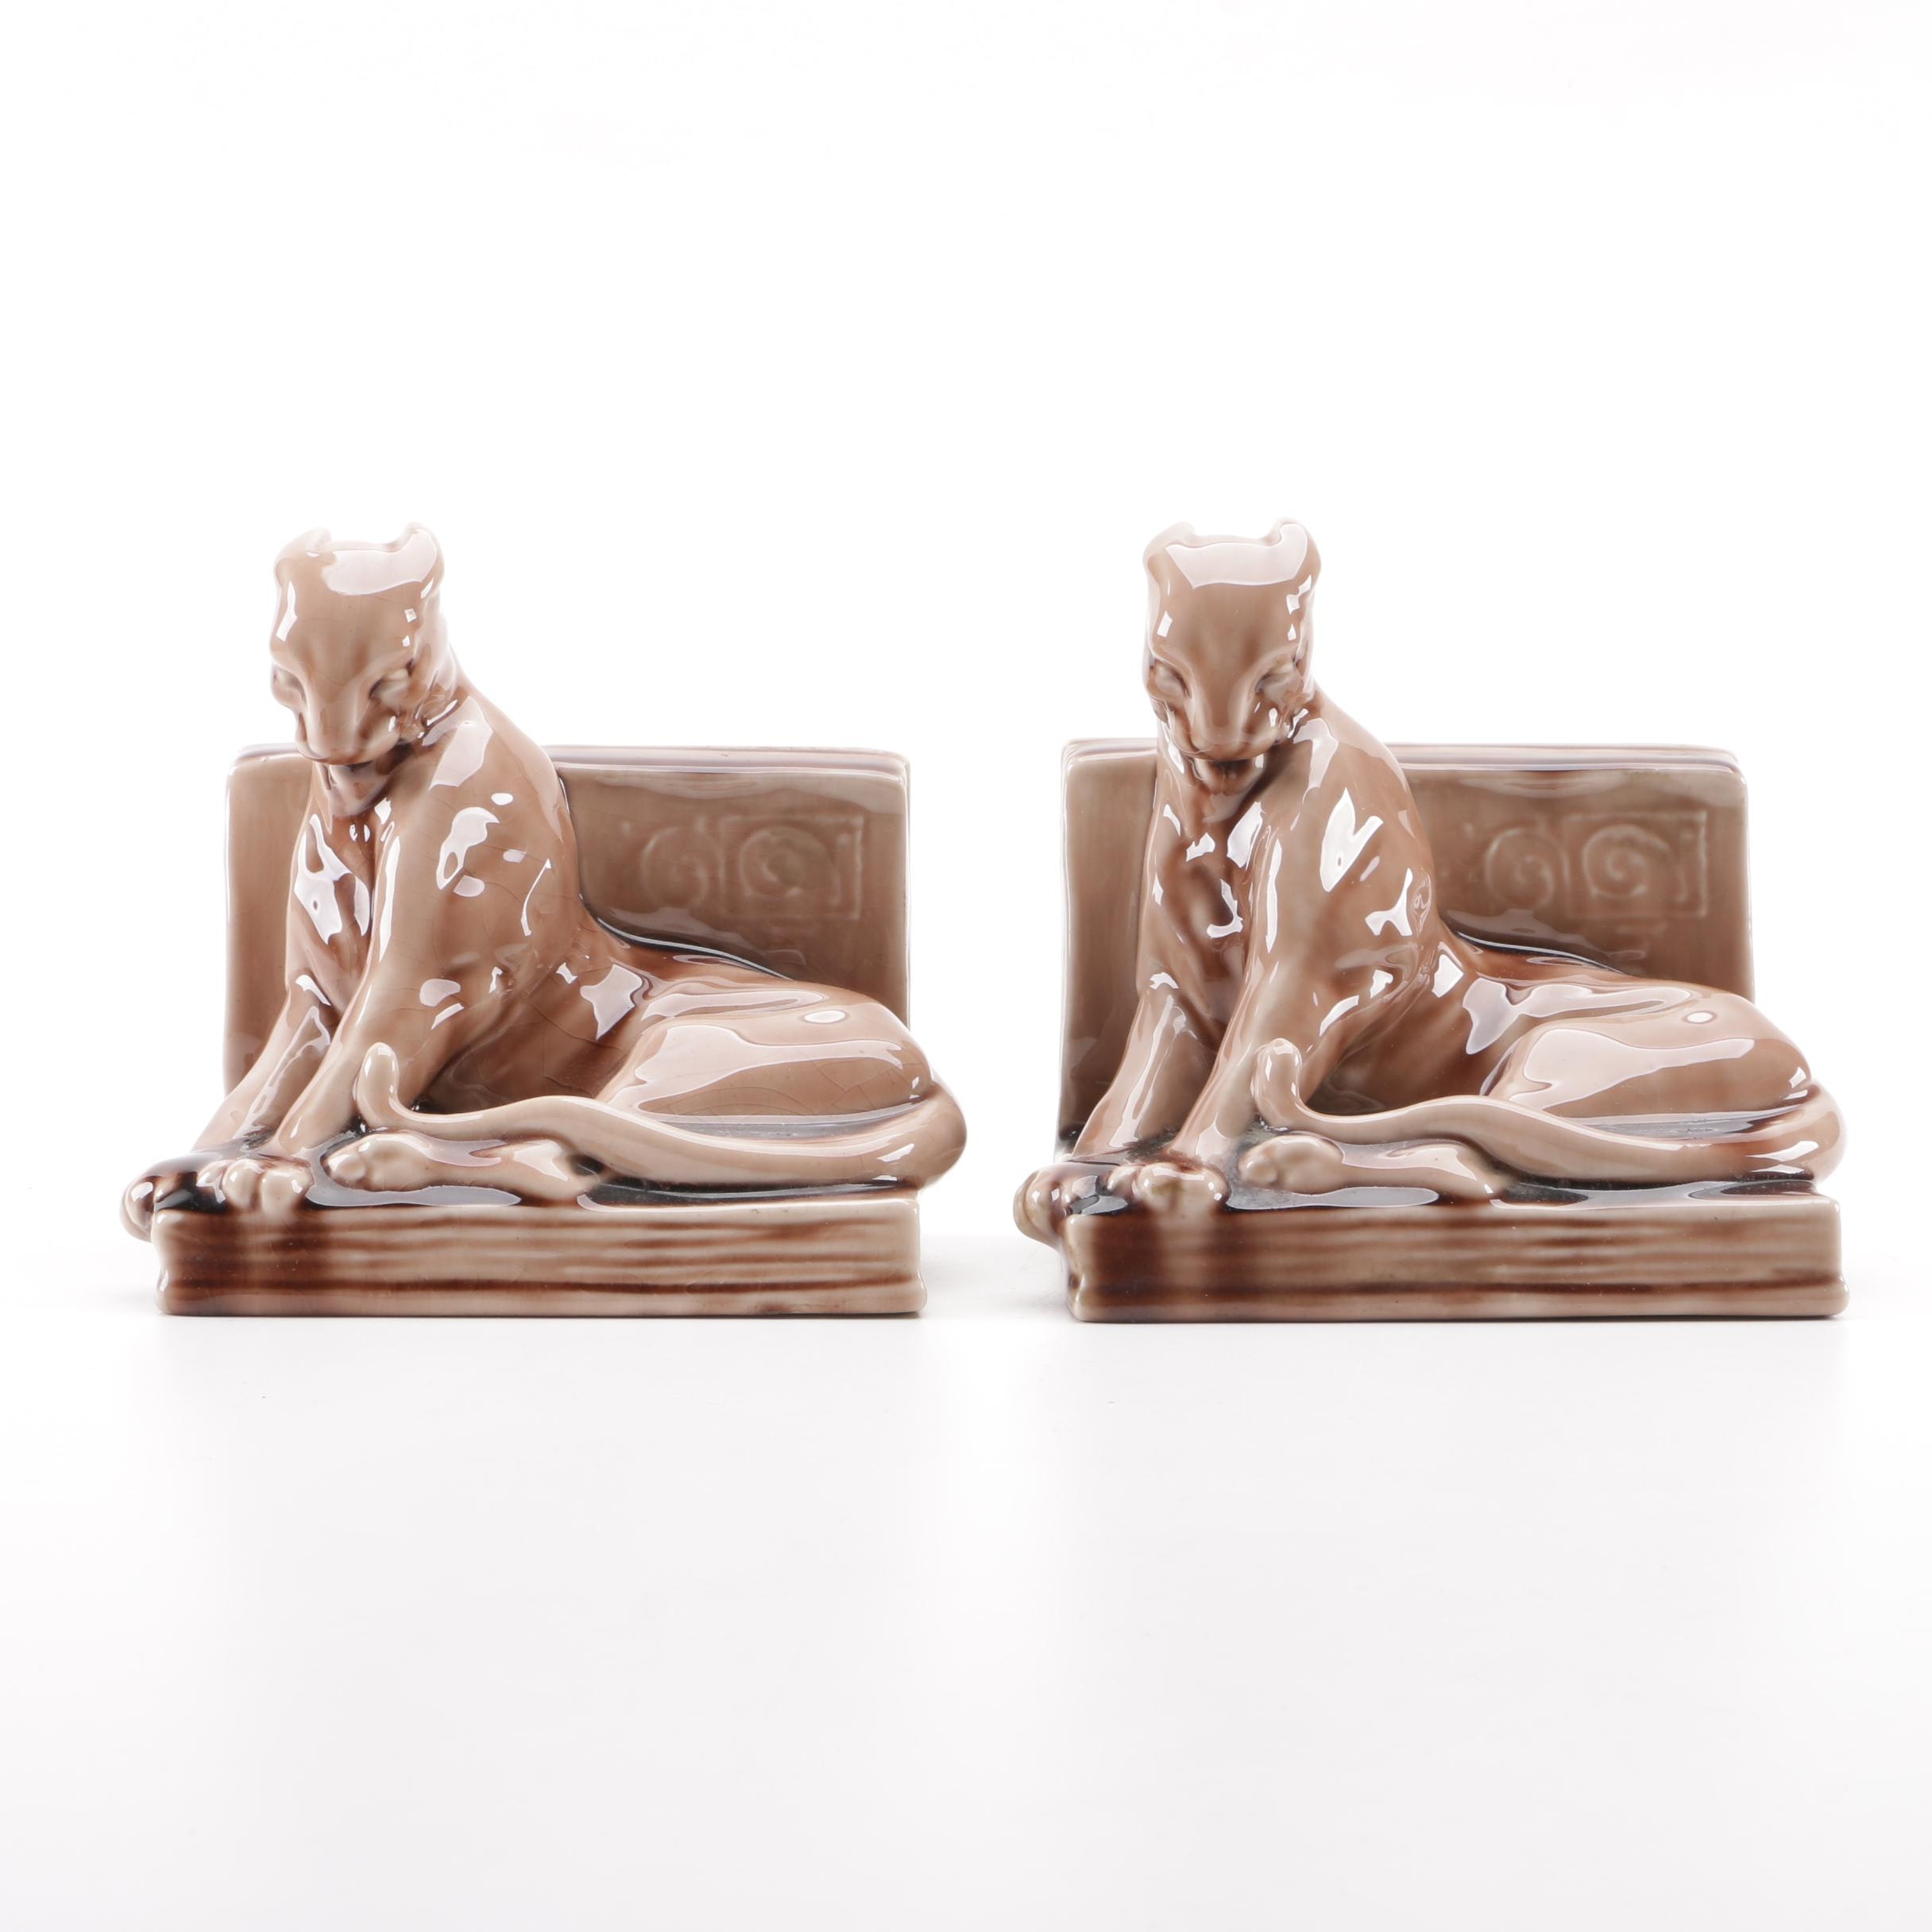 "Rookwood Pottery ""Panther"" Bookends Designed by William McDonald, 1949"